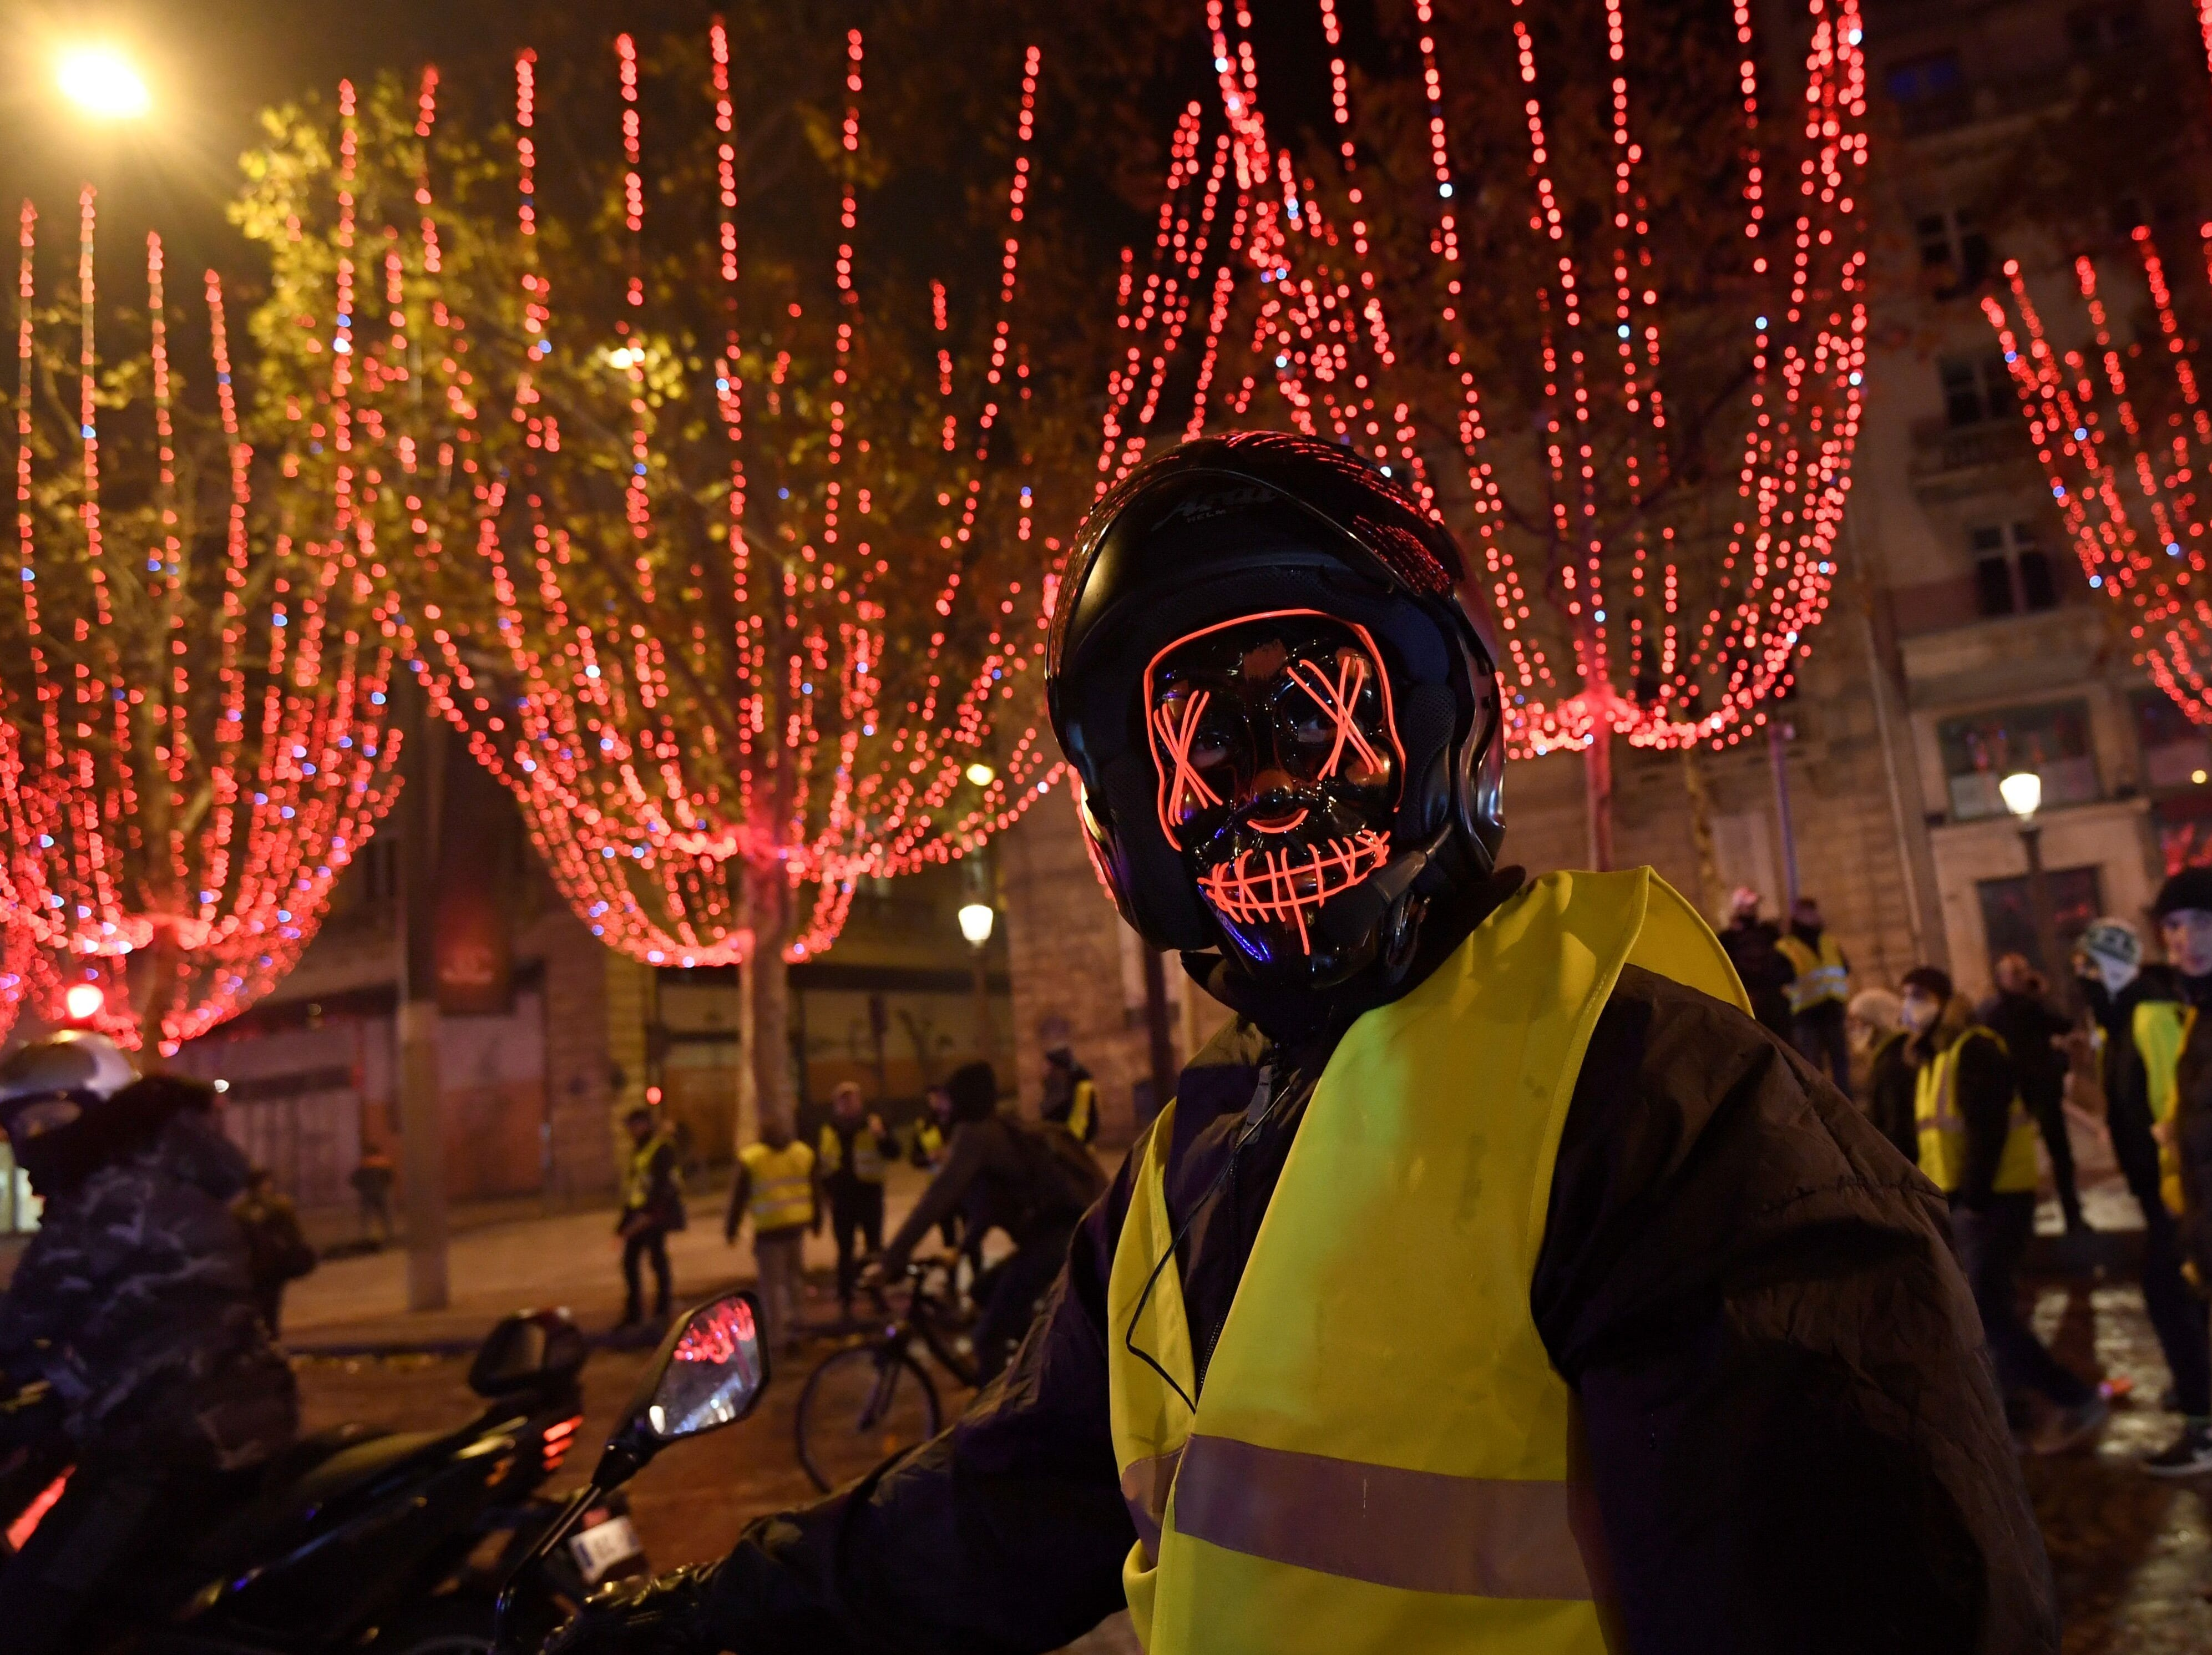 A masked protester poses on a scooter near The Arc de Triomphe on the Champs Elysees in Paris, on November 24, 2018, during a rally against rising oil prices and living costs.